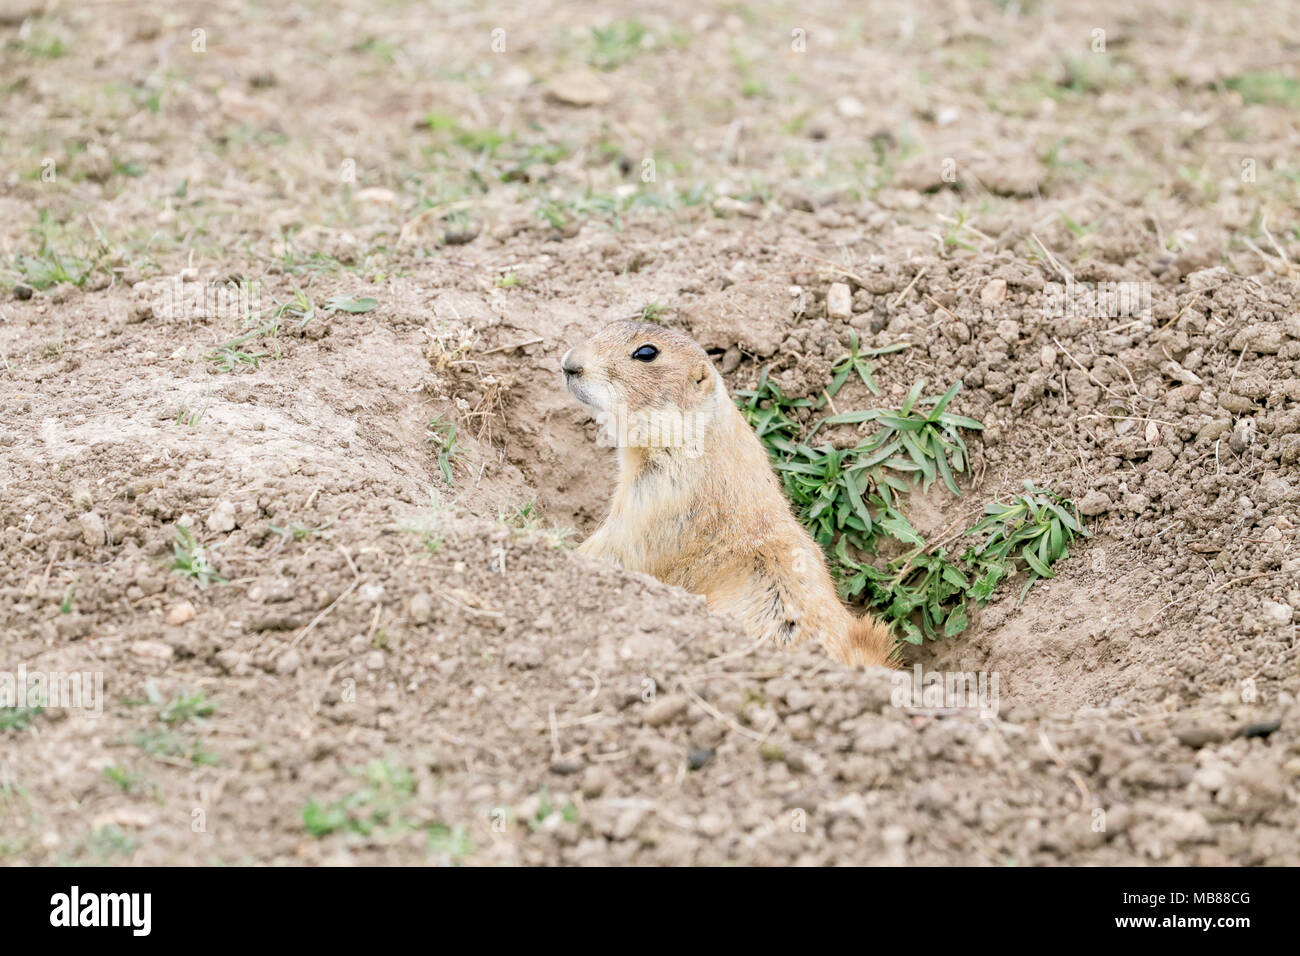 A Prarie Dog is peaking out of his whole watching me. - Stock Image